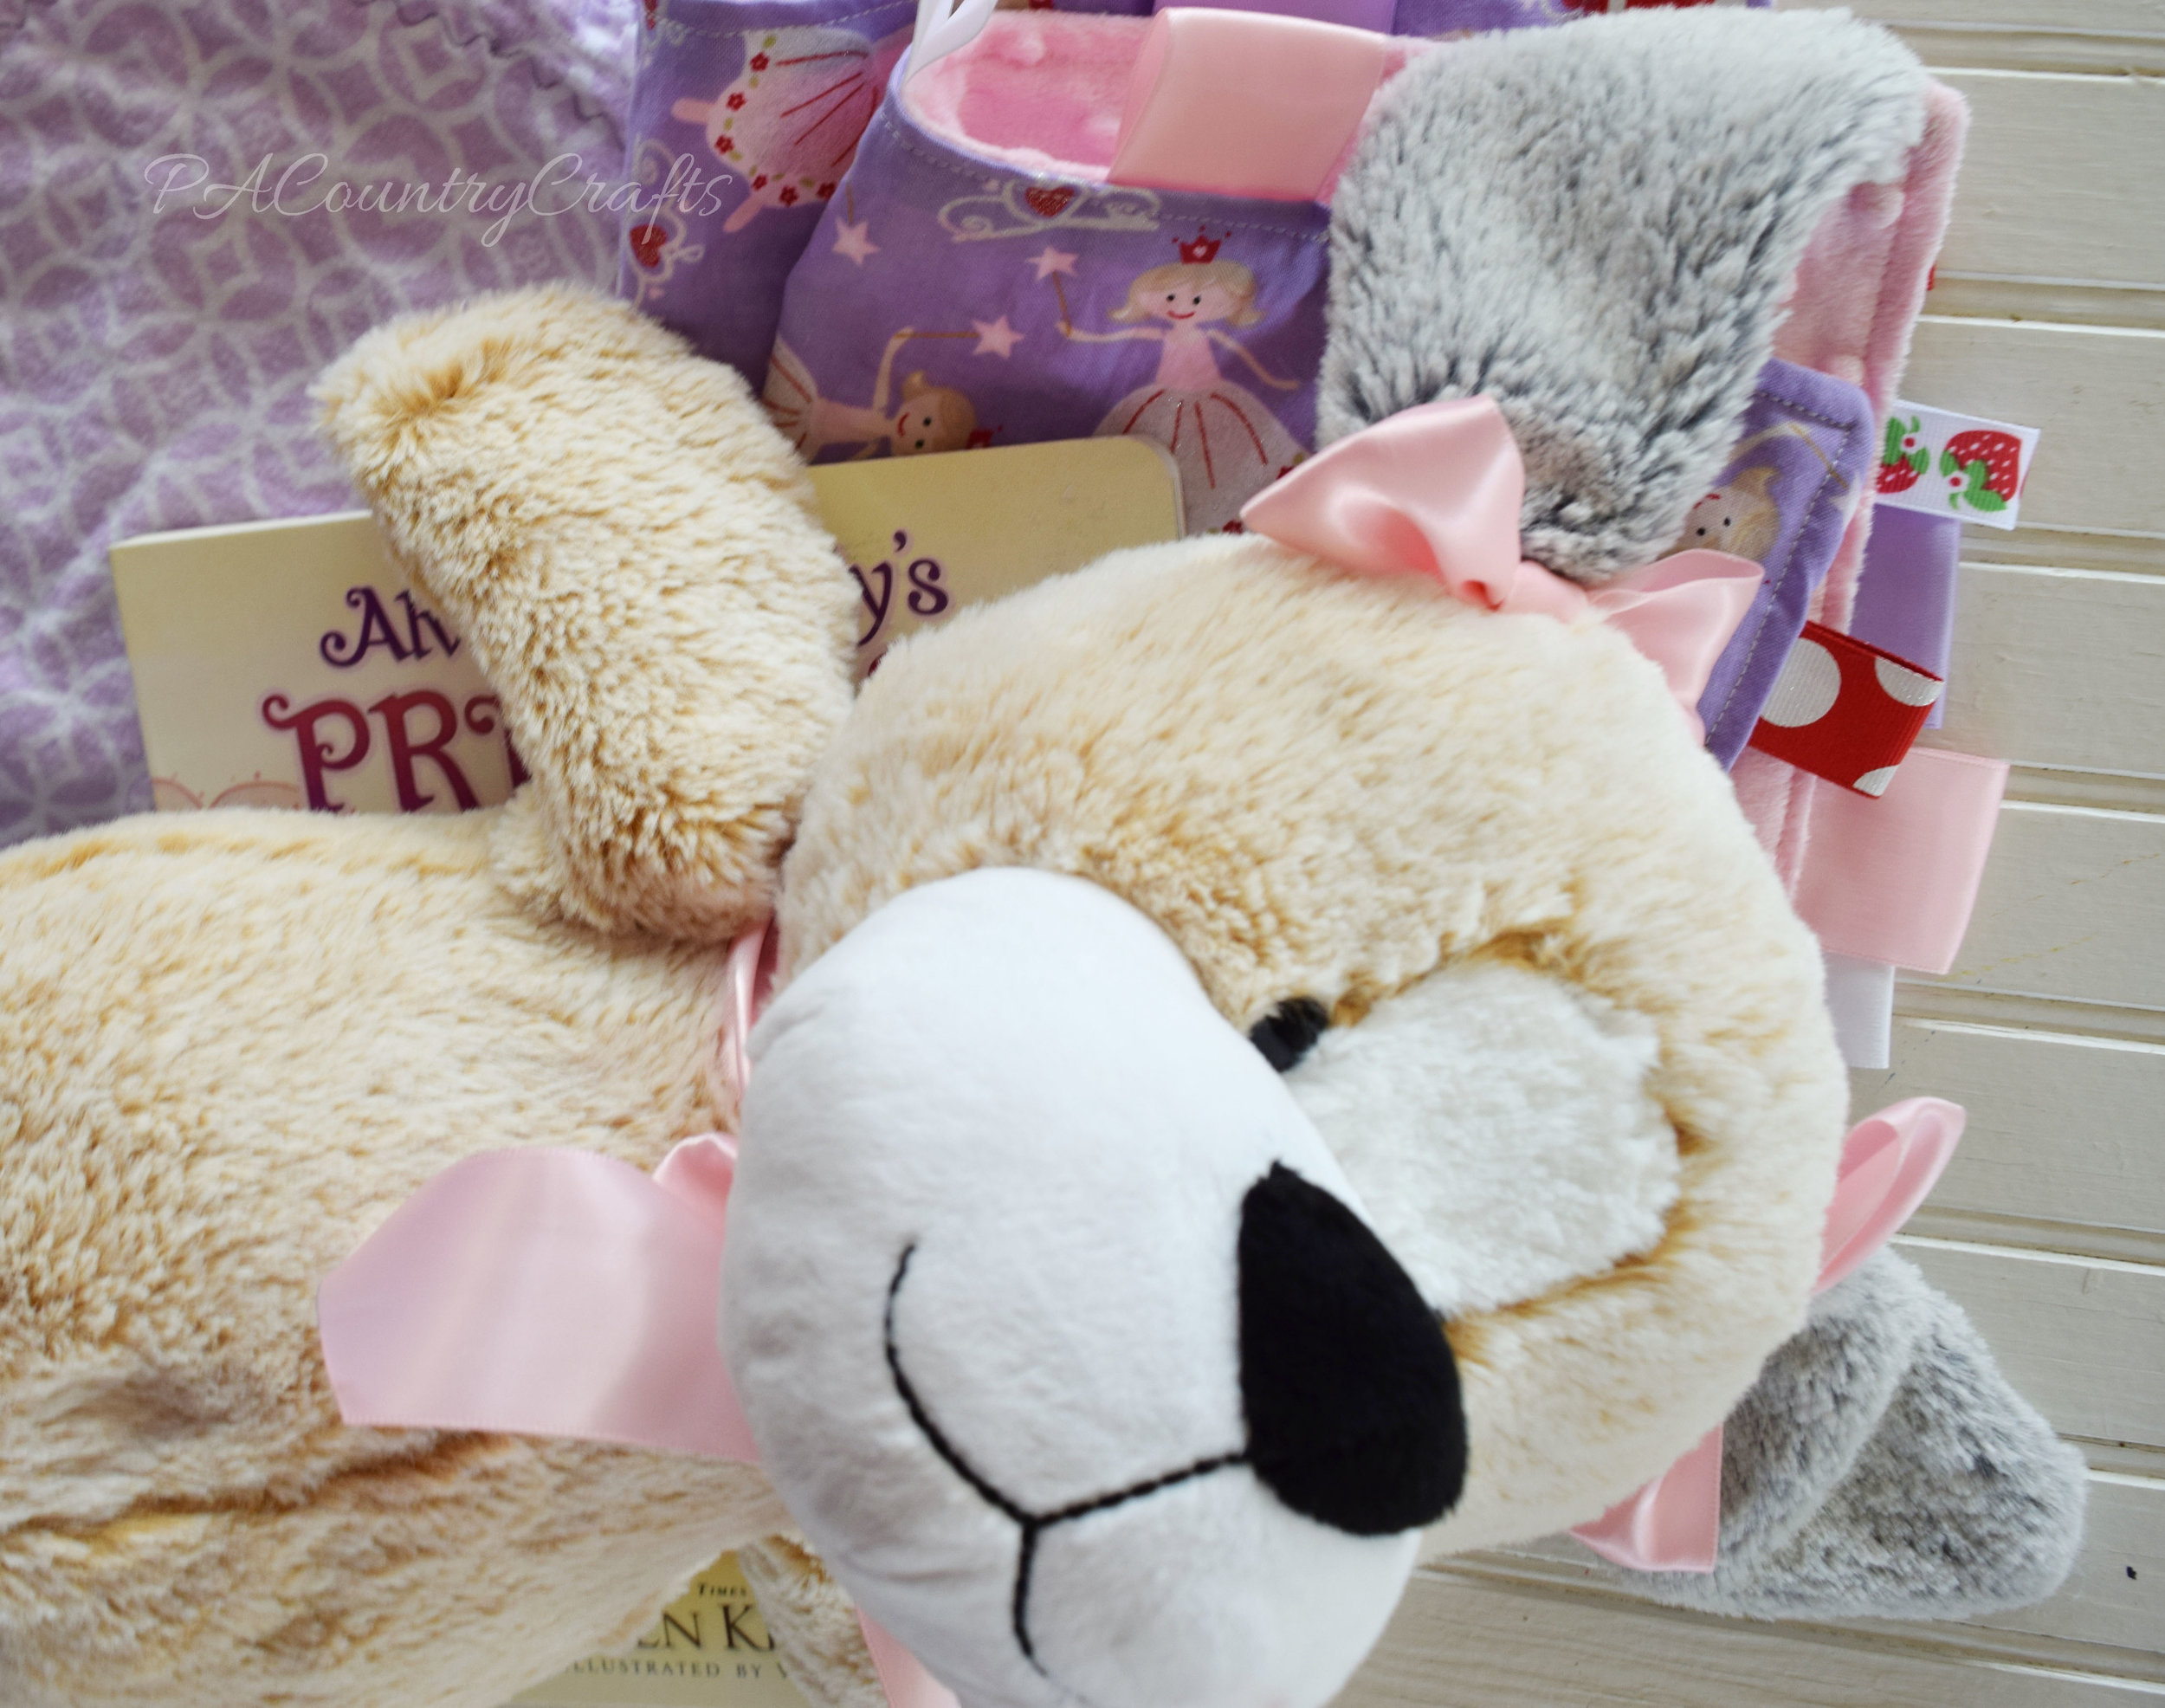 Add ribbon bows to make a stuffed animal match the gift.